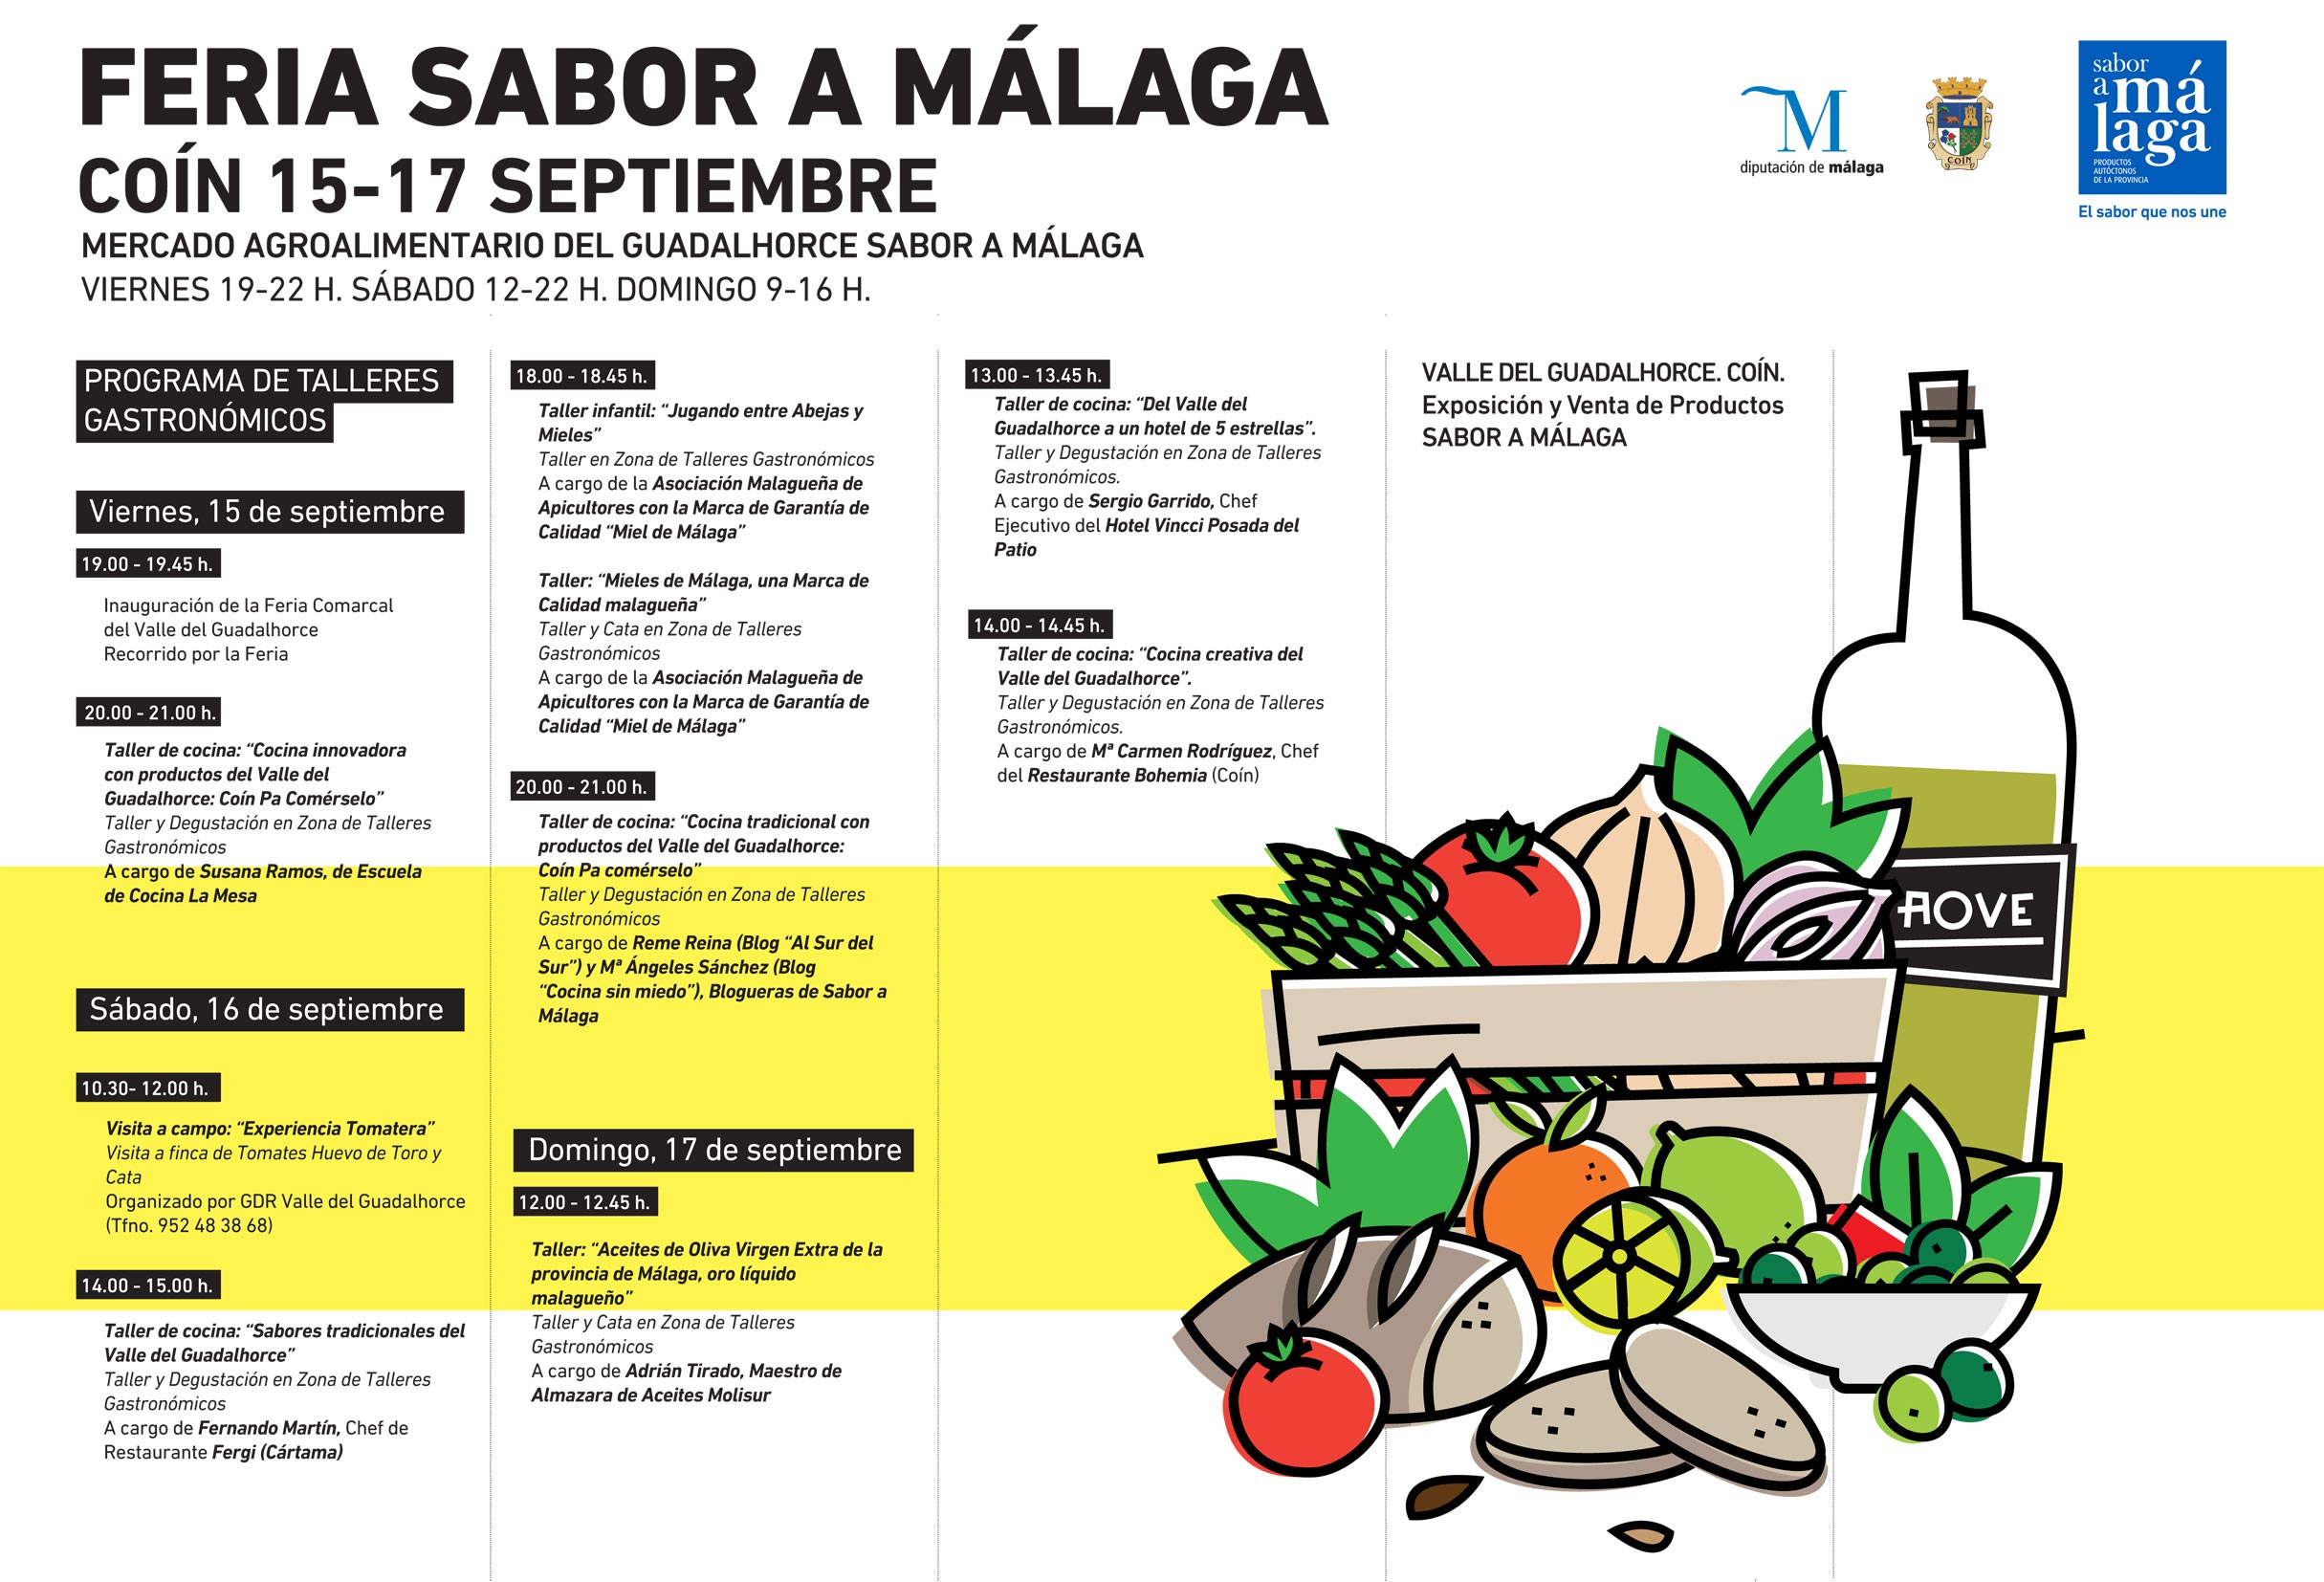 Feria sabor a m laga co n 2017 the gourmet journal for Feria outlet malaga 2017